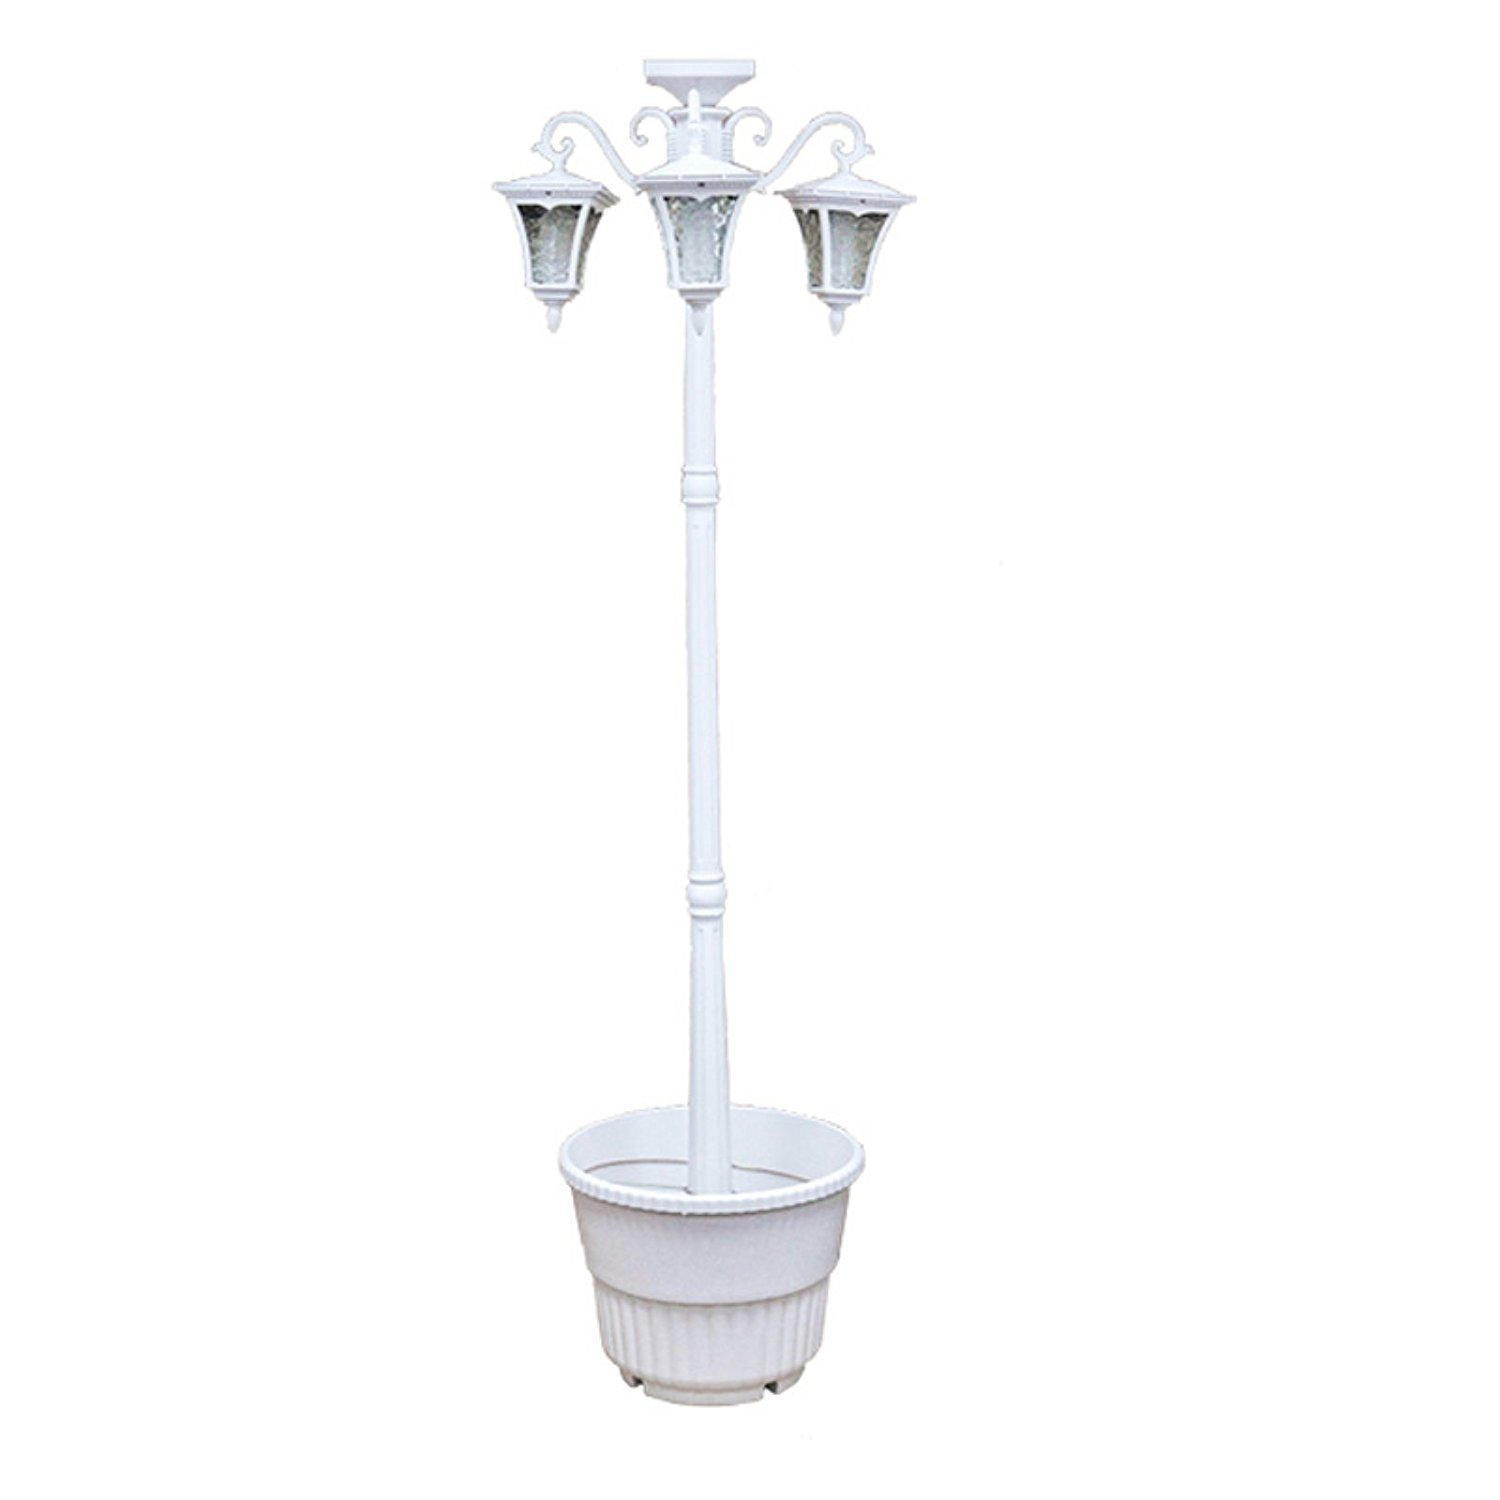 EdenBranch 312011 Sun-Ray Vittoria Solar LED Lamp Post and Planter, Three-Head, Batteries Included, White